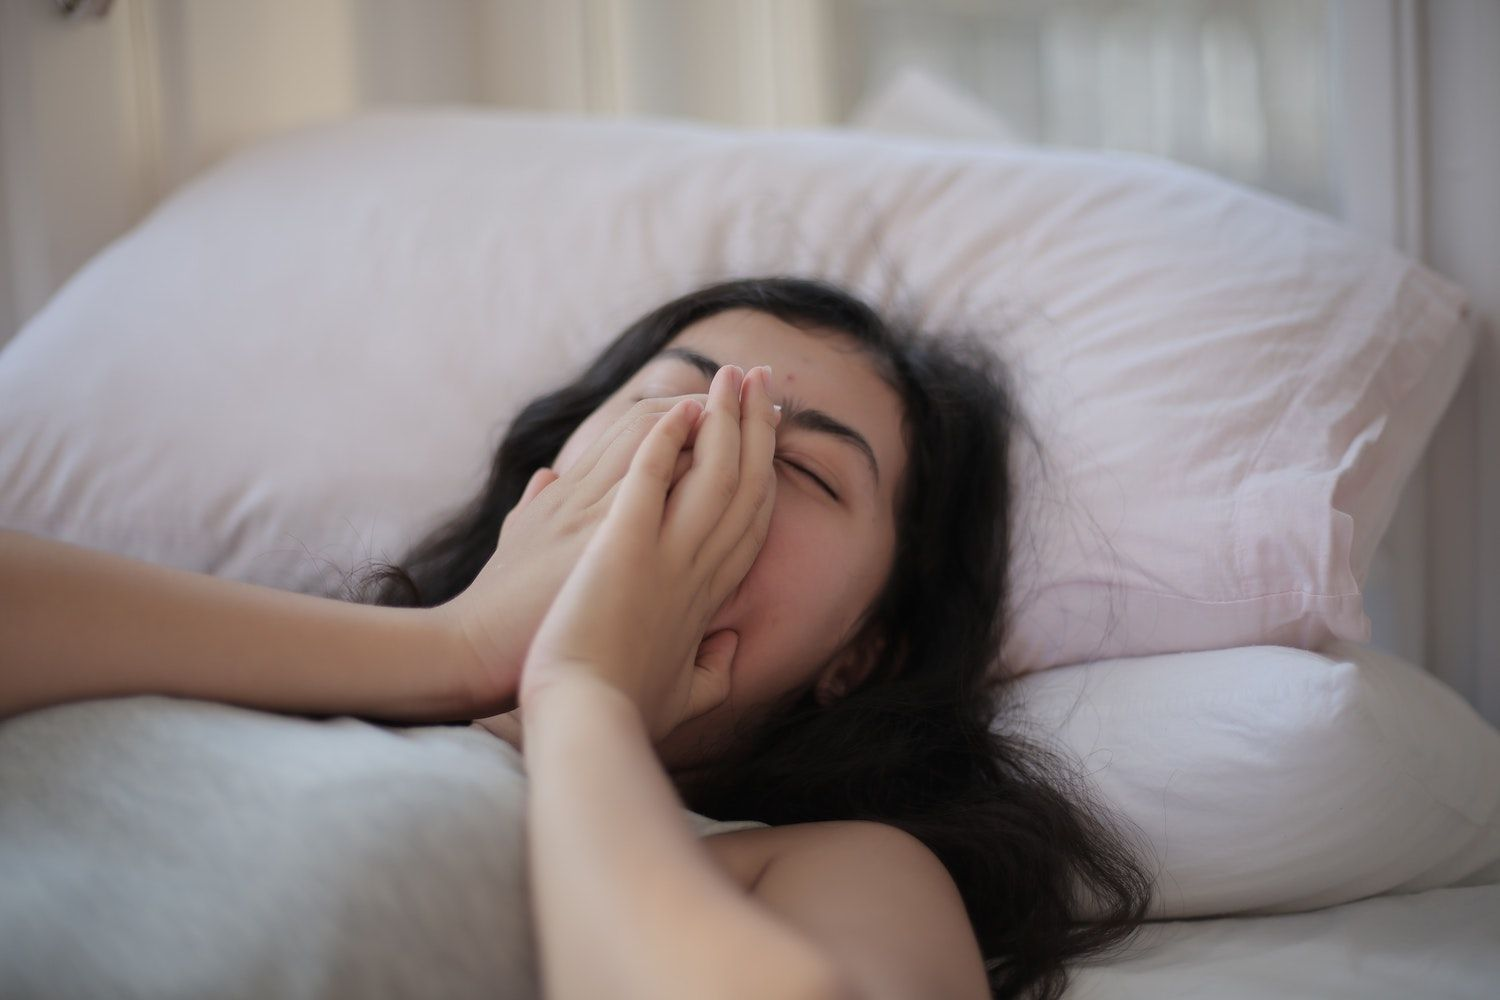 1 in 3 teens are having sleep problems due to pandemic